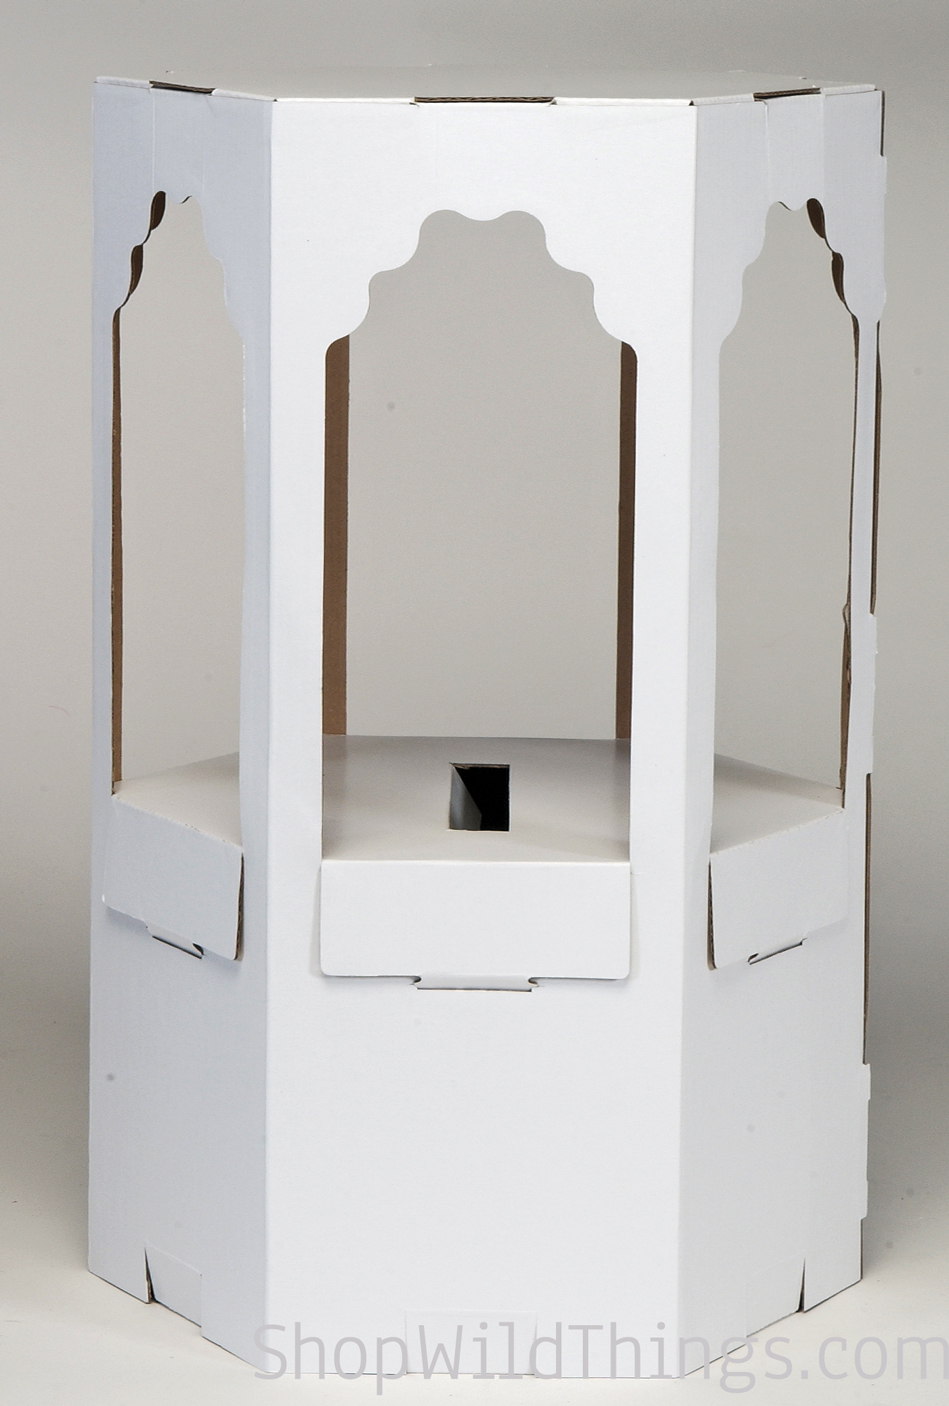 Buy cardboard wishing boxes wishing well decorate for How to decorate a money box